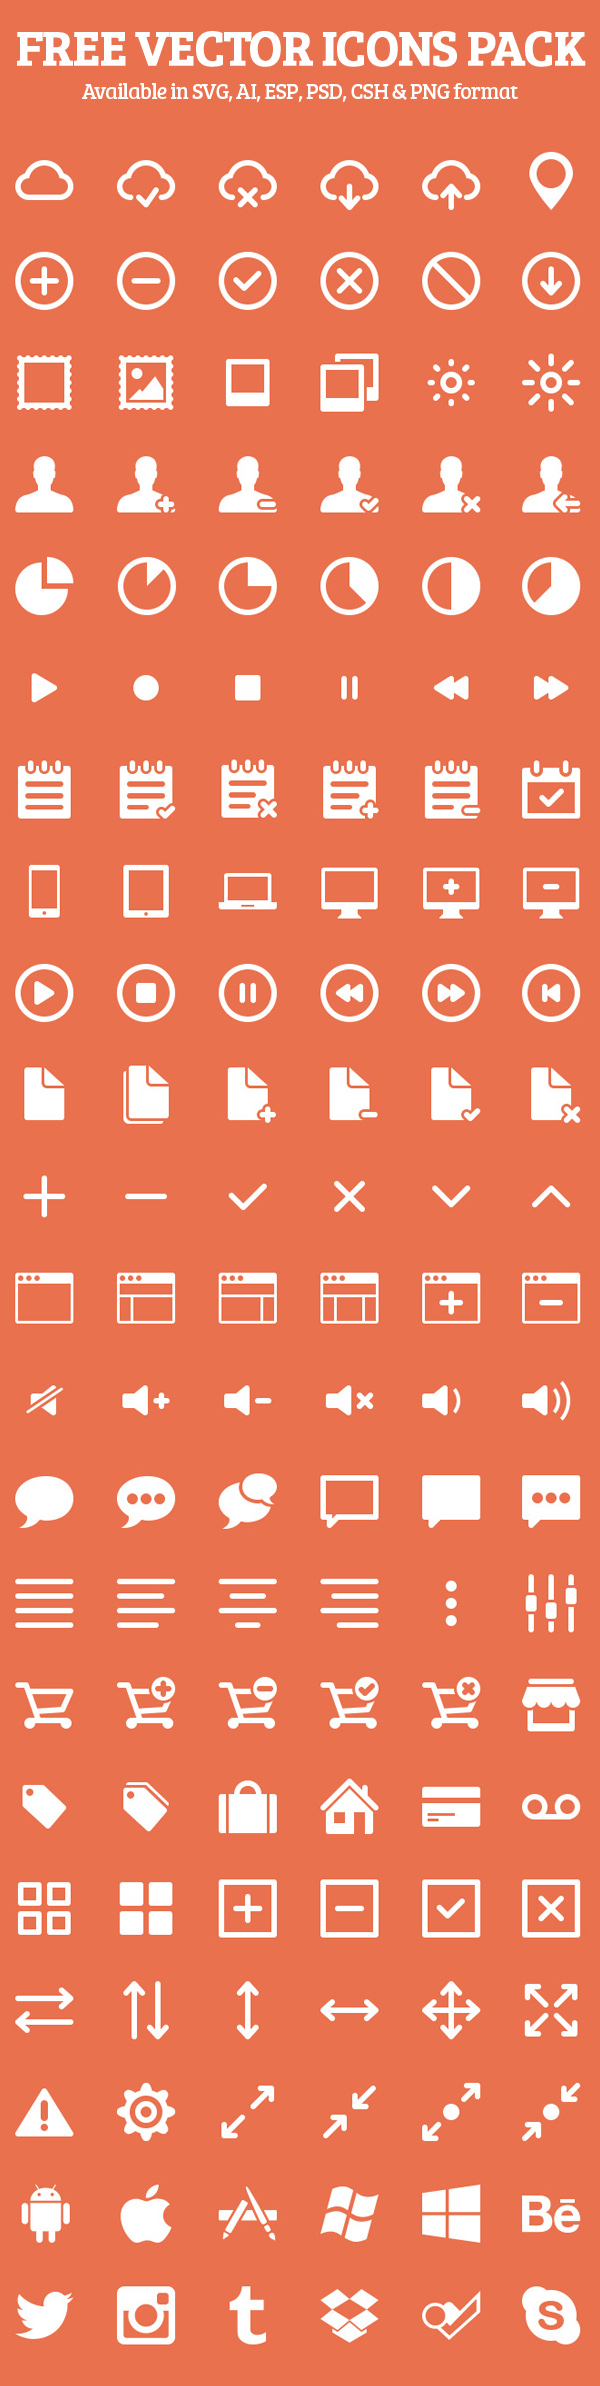 Free Vector Icons Pack Preview 1